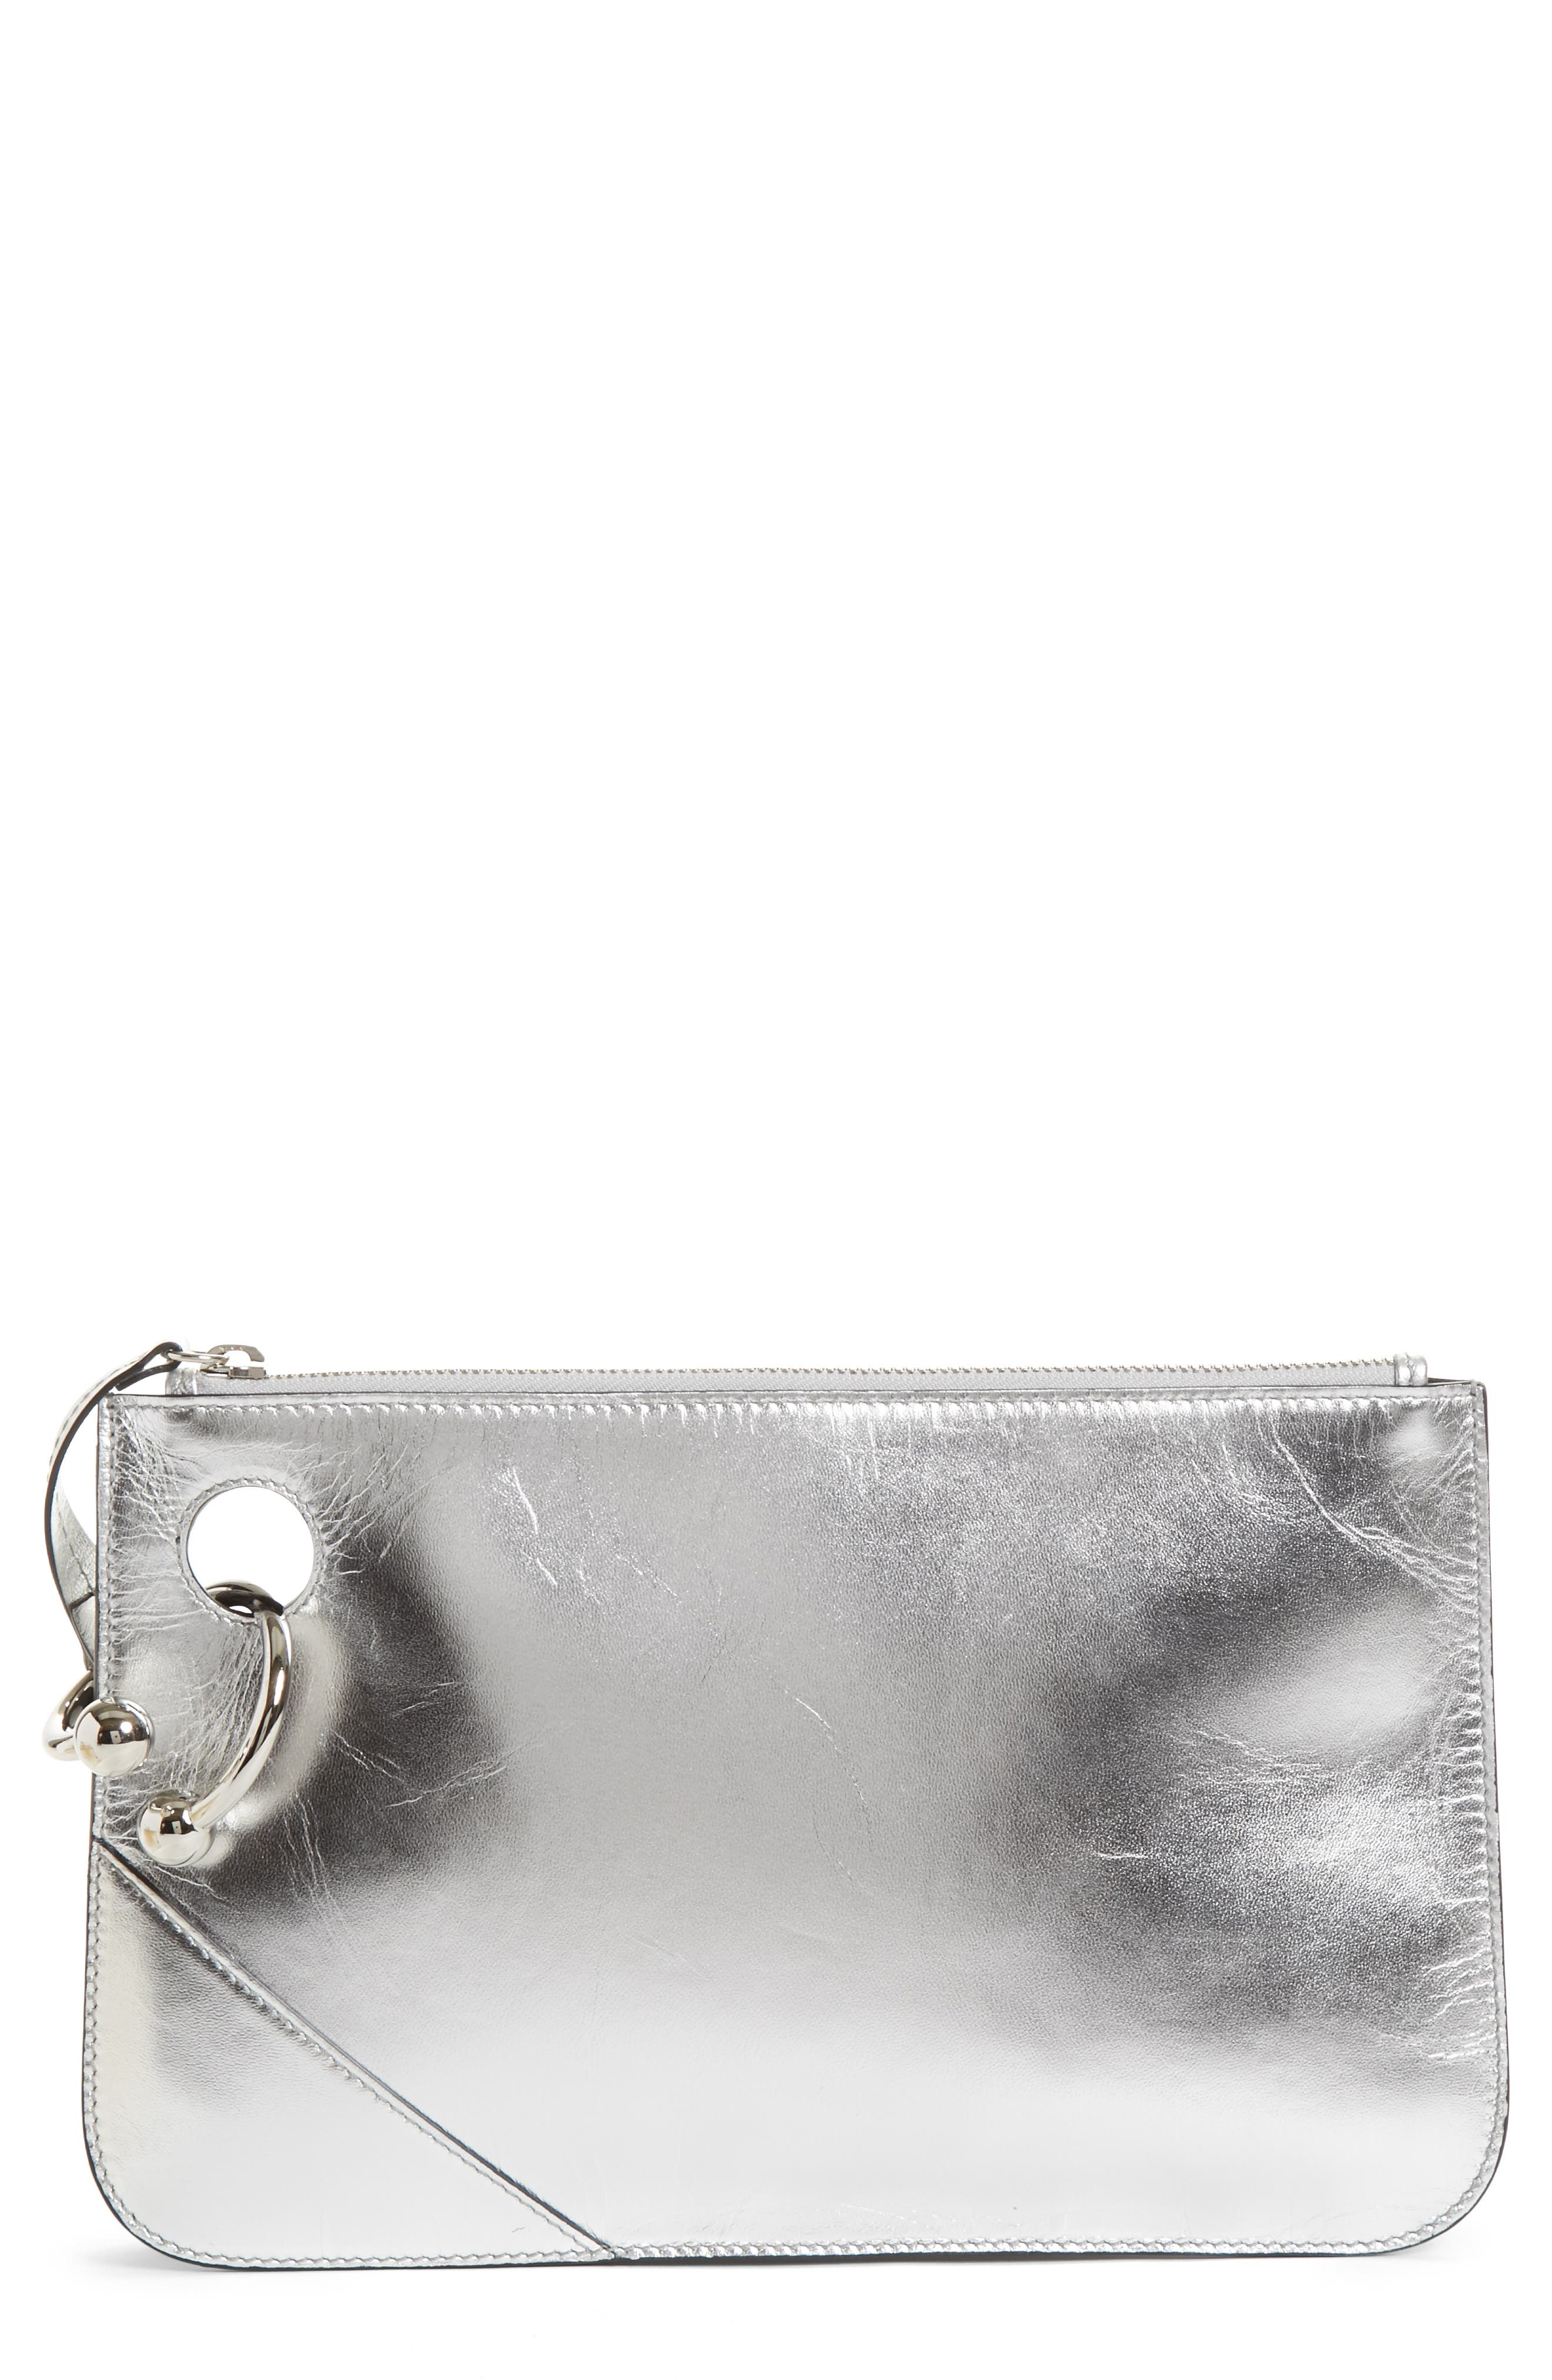 J.W.ANDERSON Pierce Metallic Leather Clutch,                         Main,                         color, 040